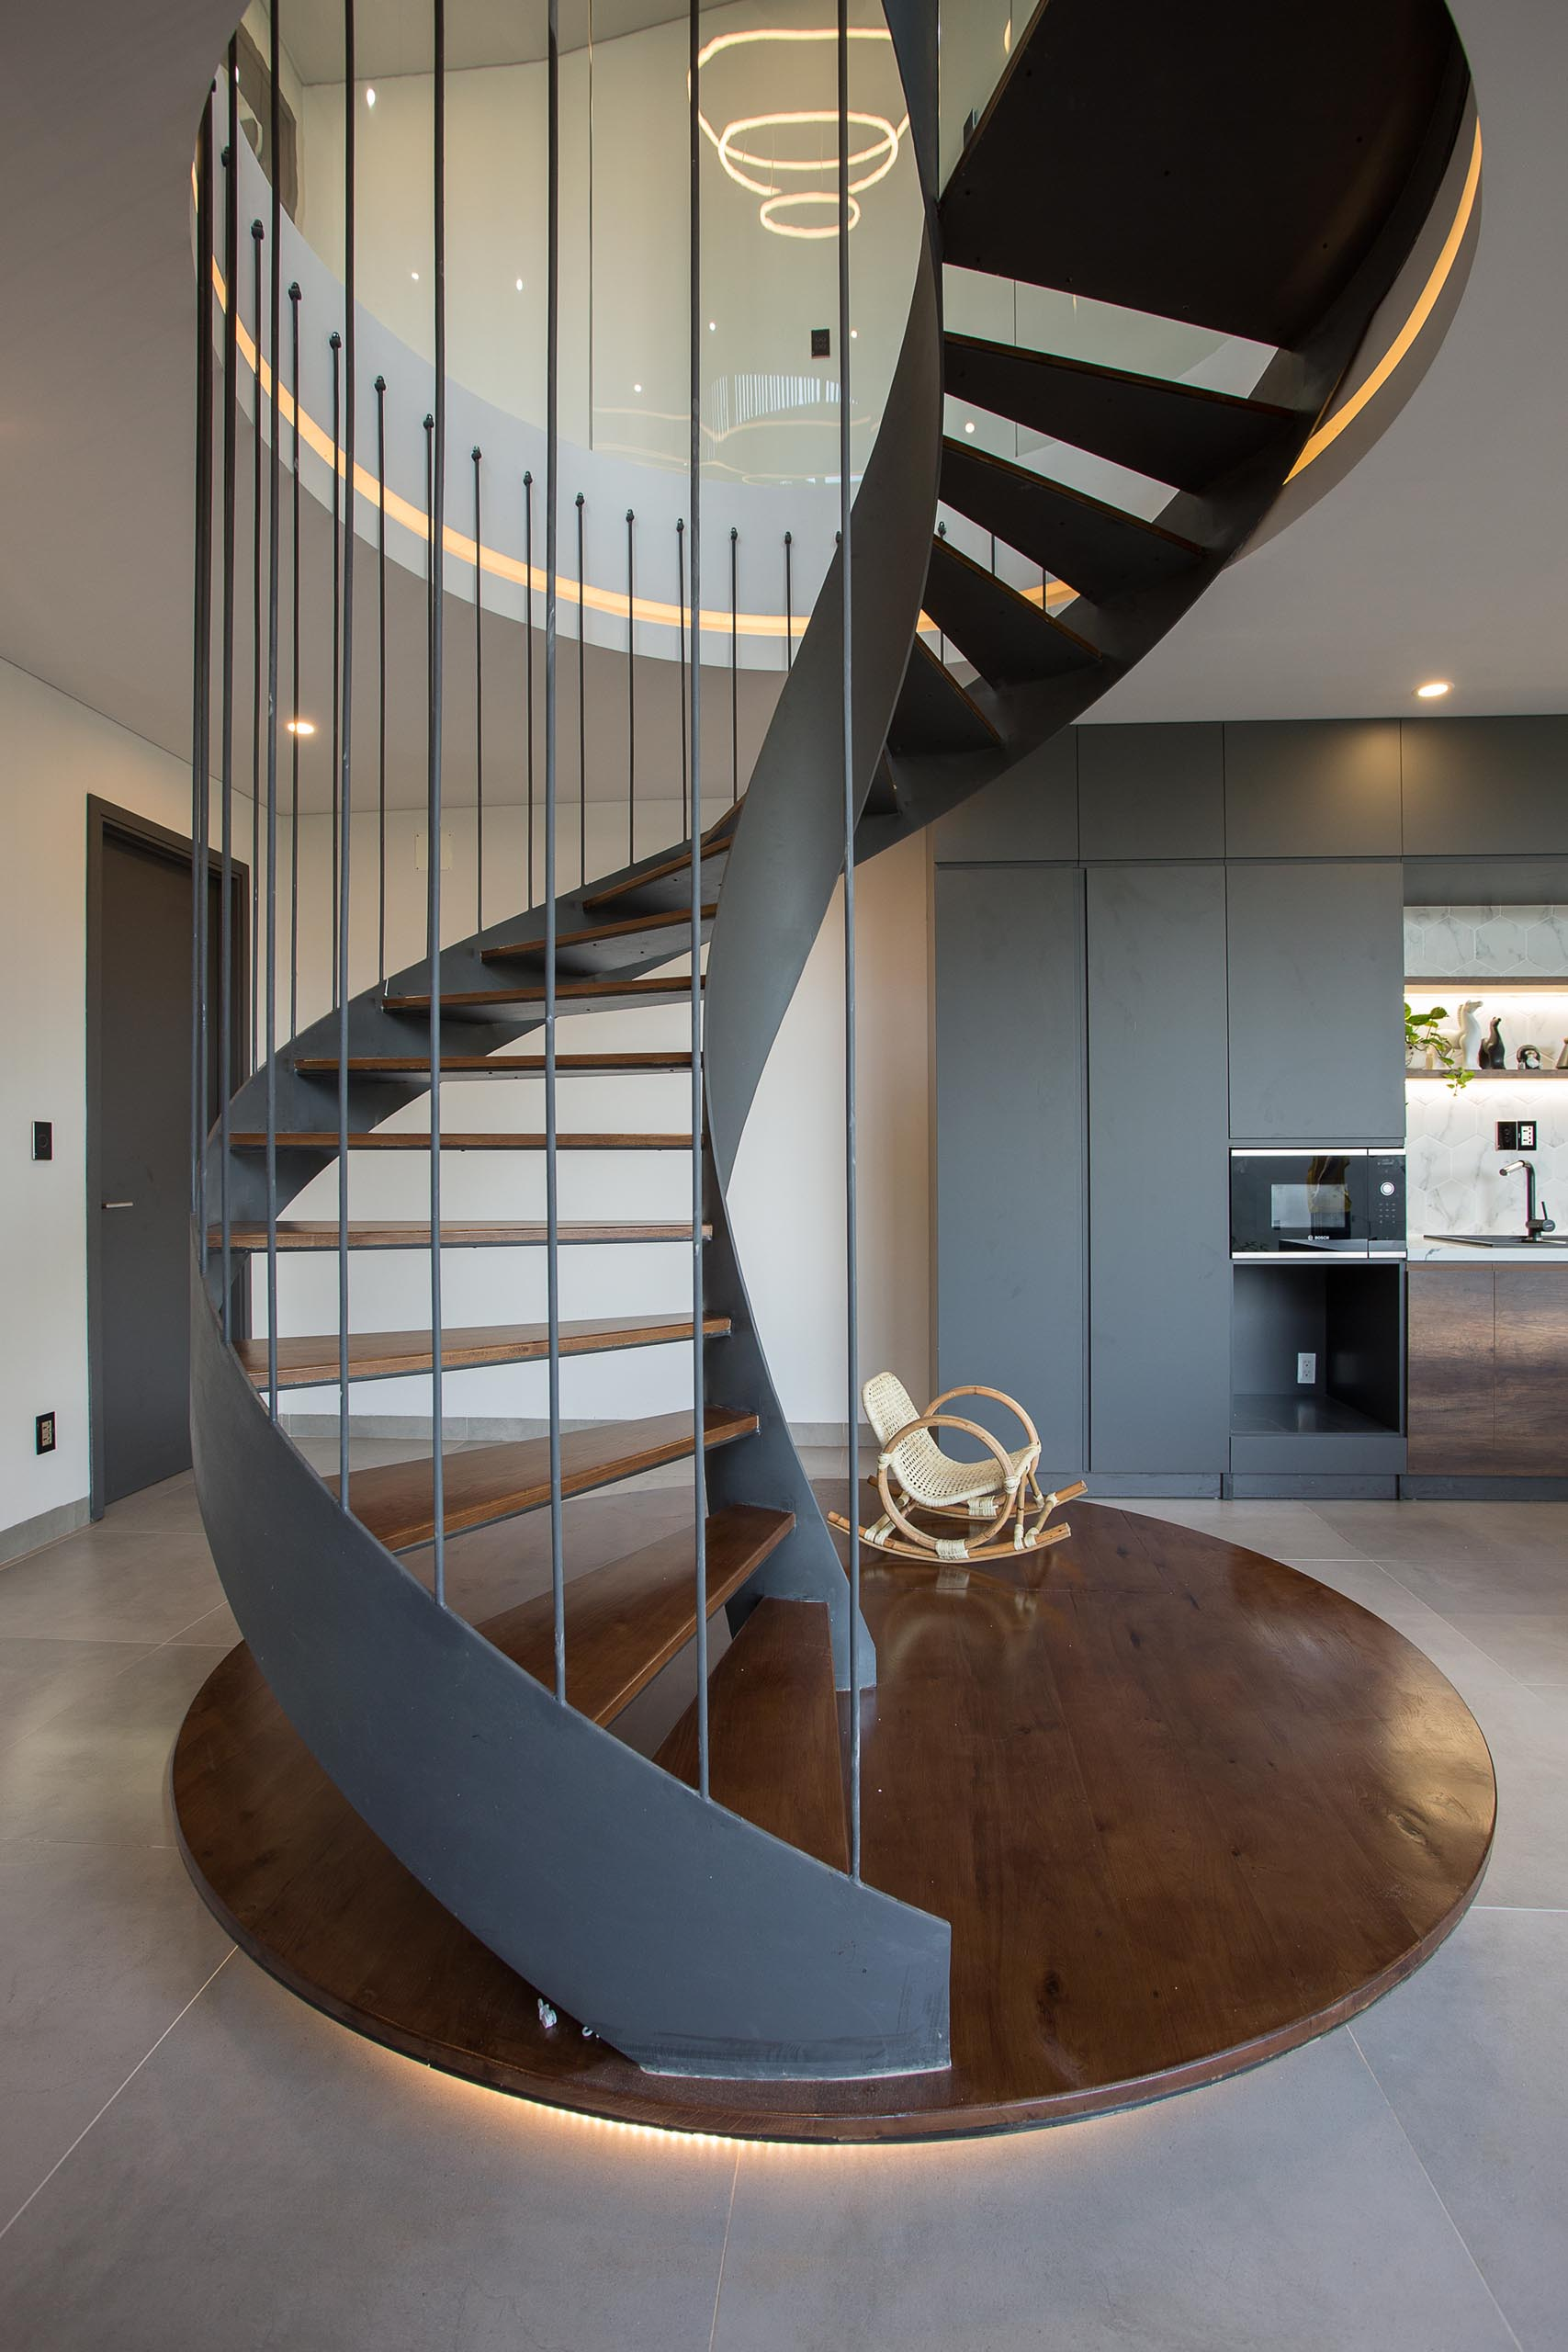 A modern home with black spiral stairs.